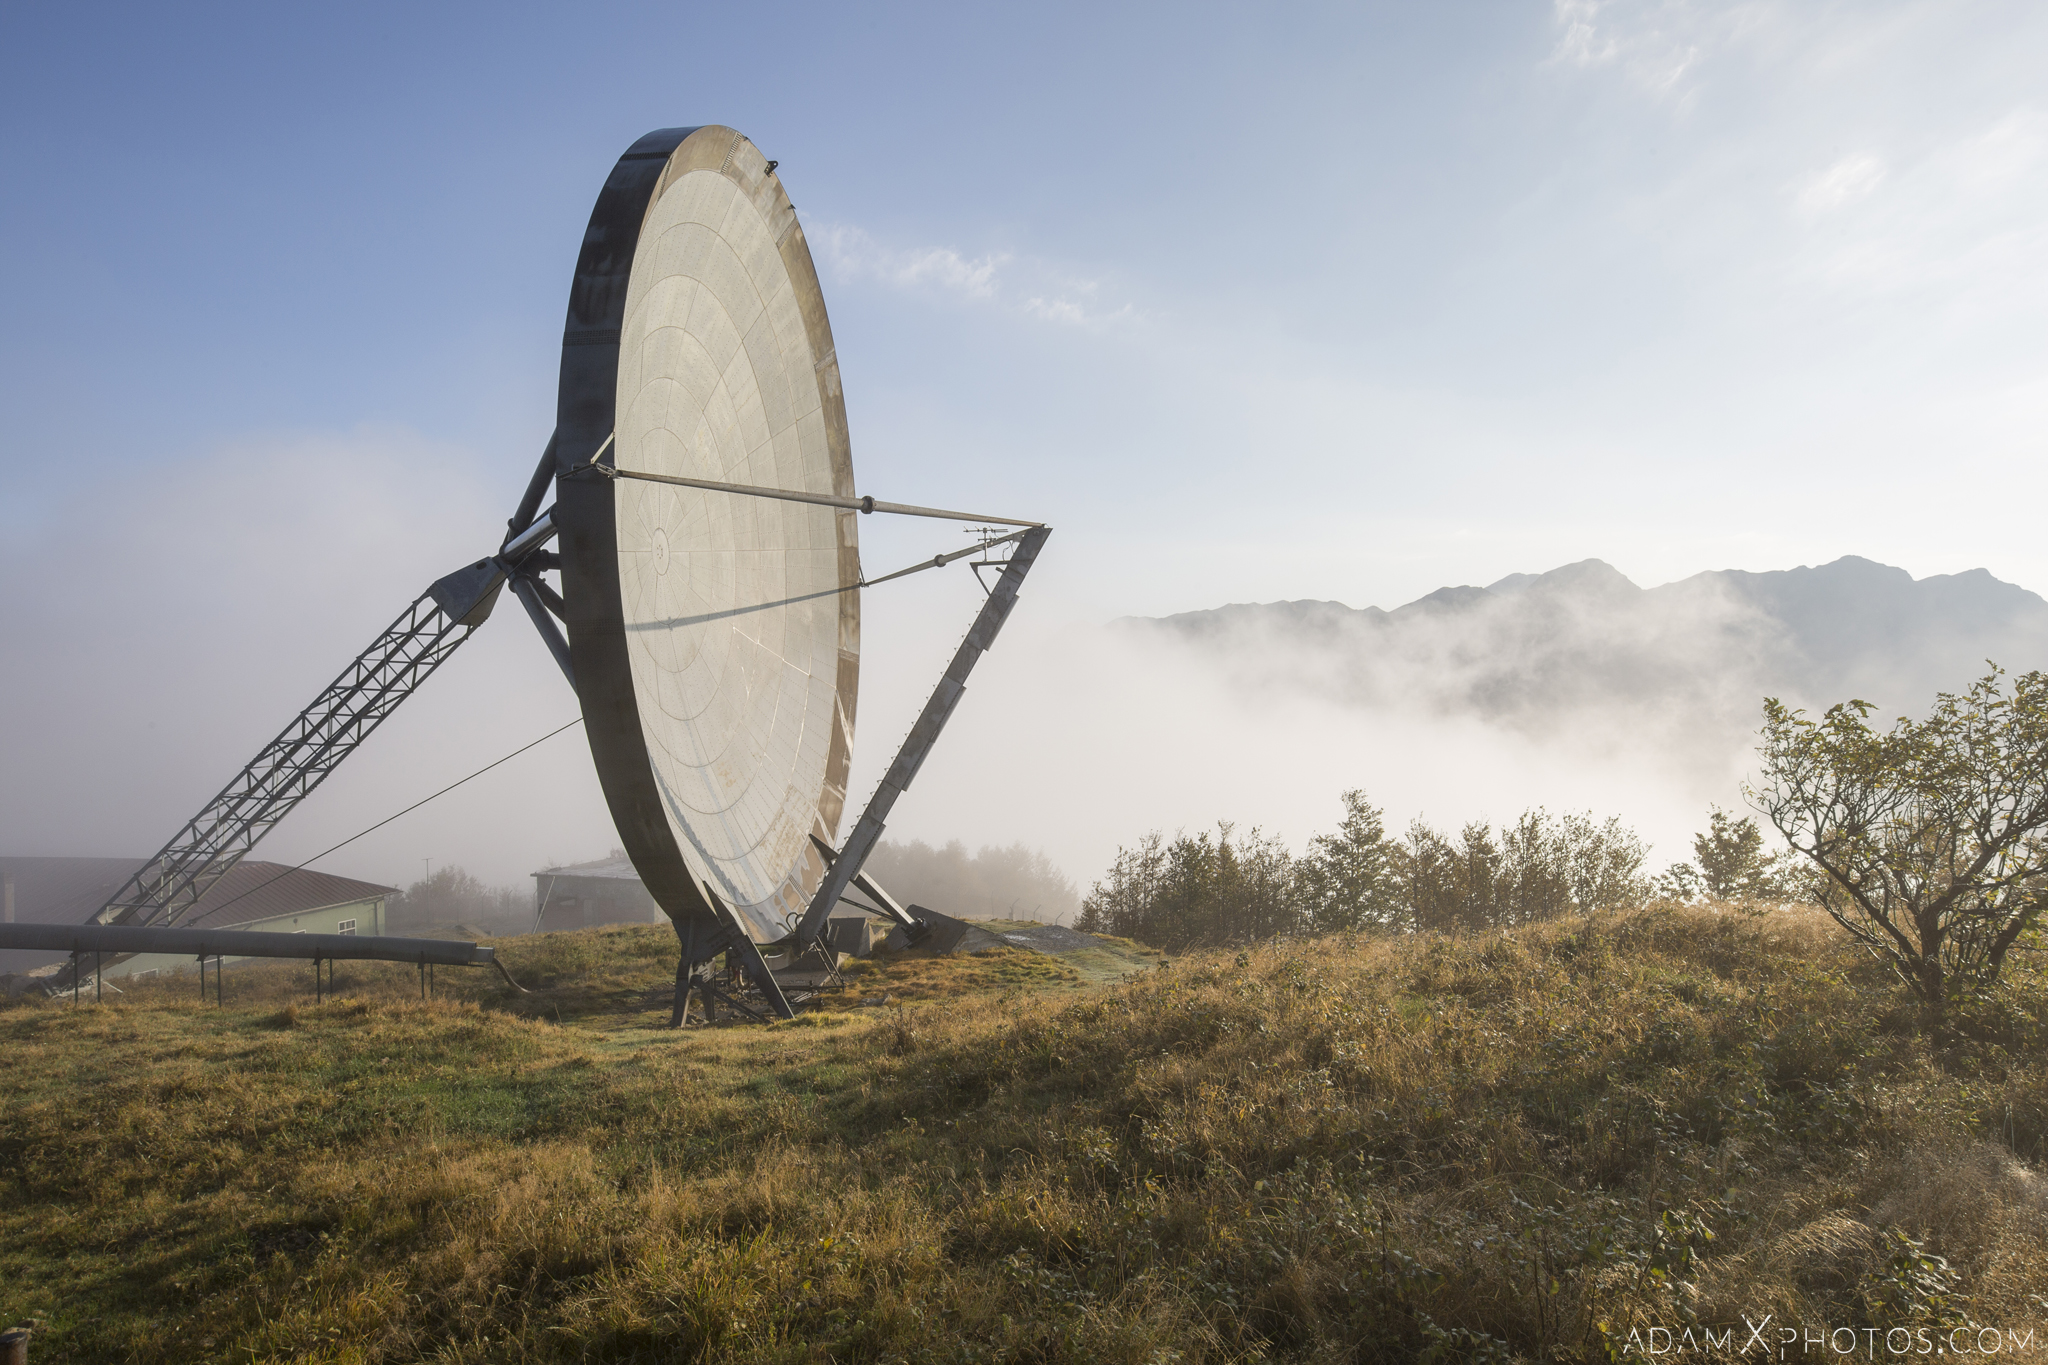 Parabola dish radar radio communications Ice Station Zebra NATO Livorno Monte del Giogo Italy Italia Urbex Adam X Urban Exploration Access 2016 Abandoned decay lost forgotten derelict location haunting eerie